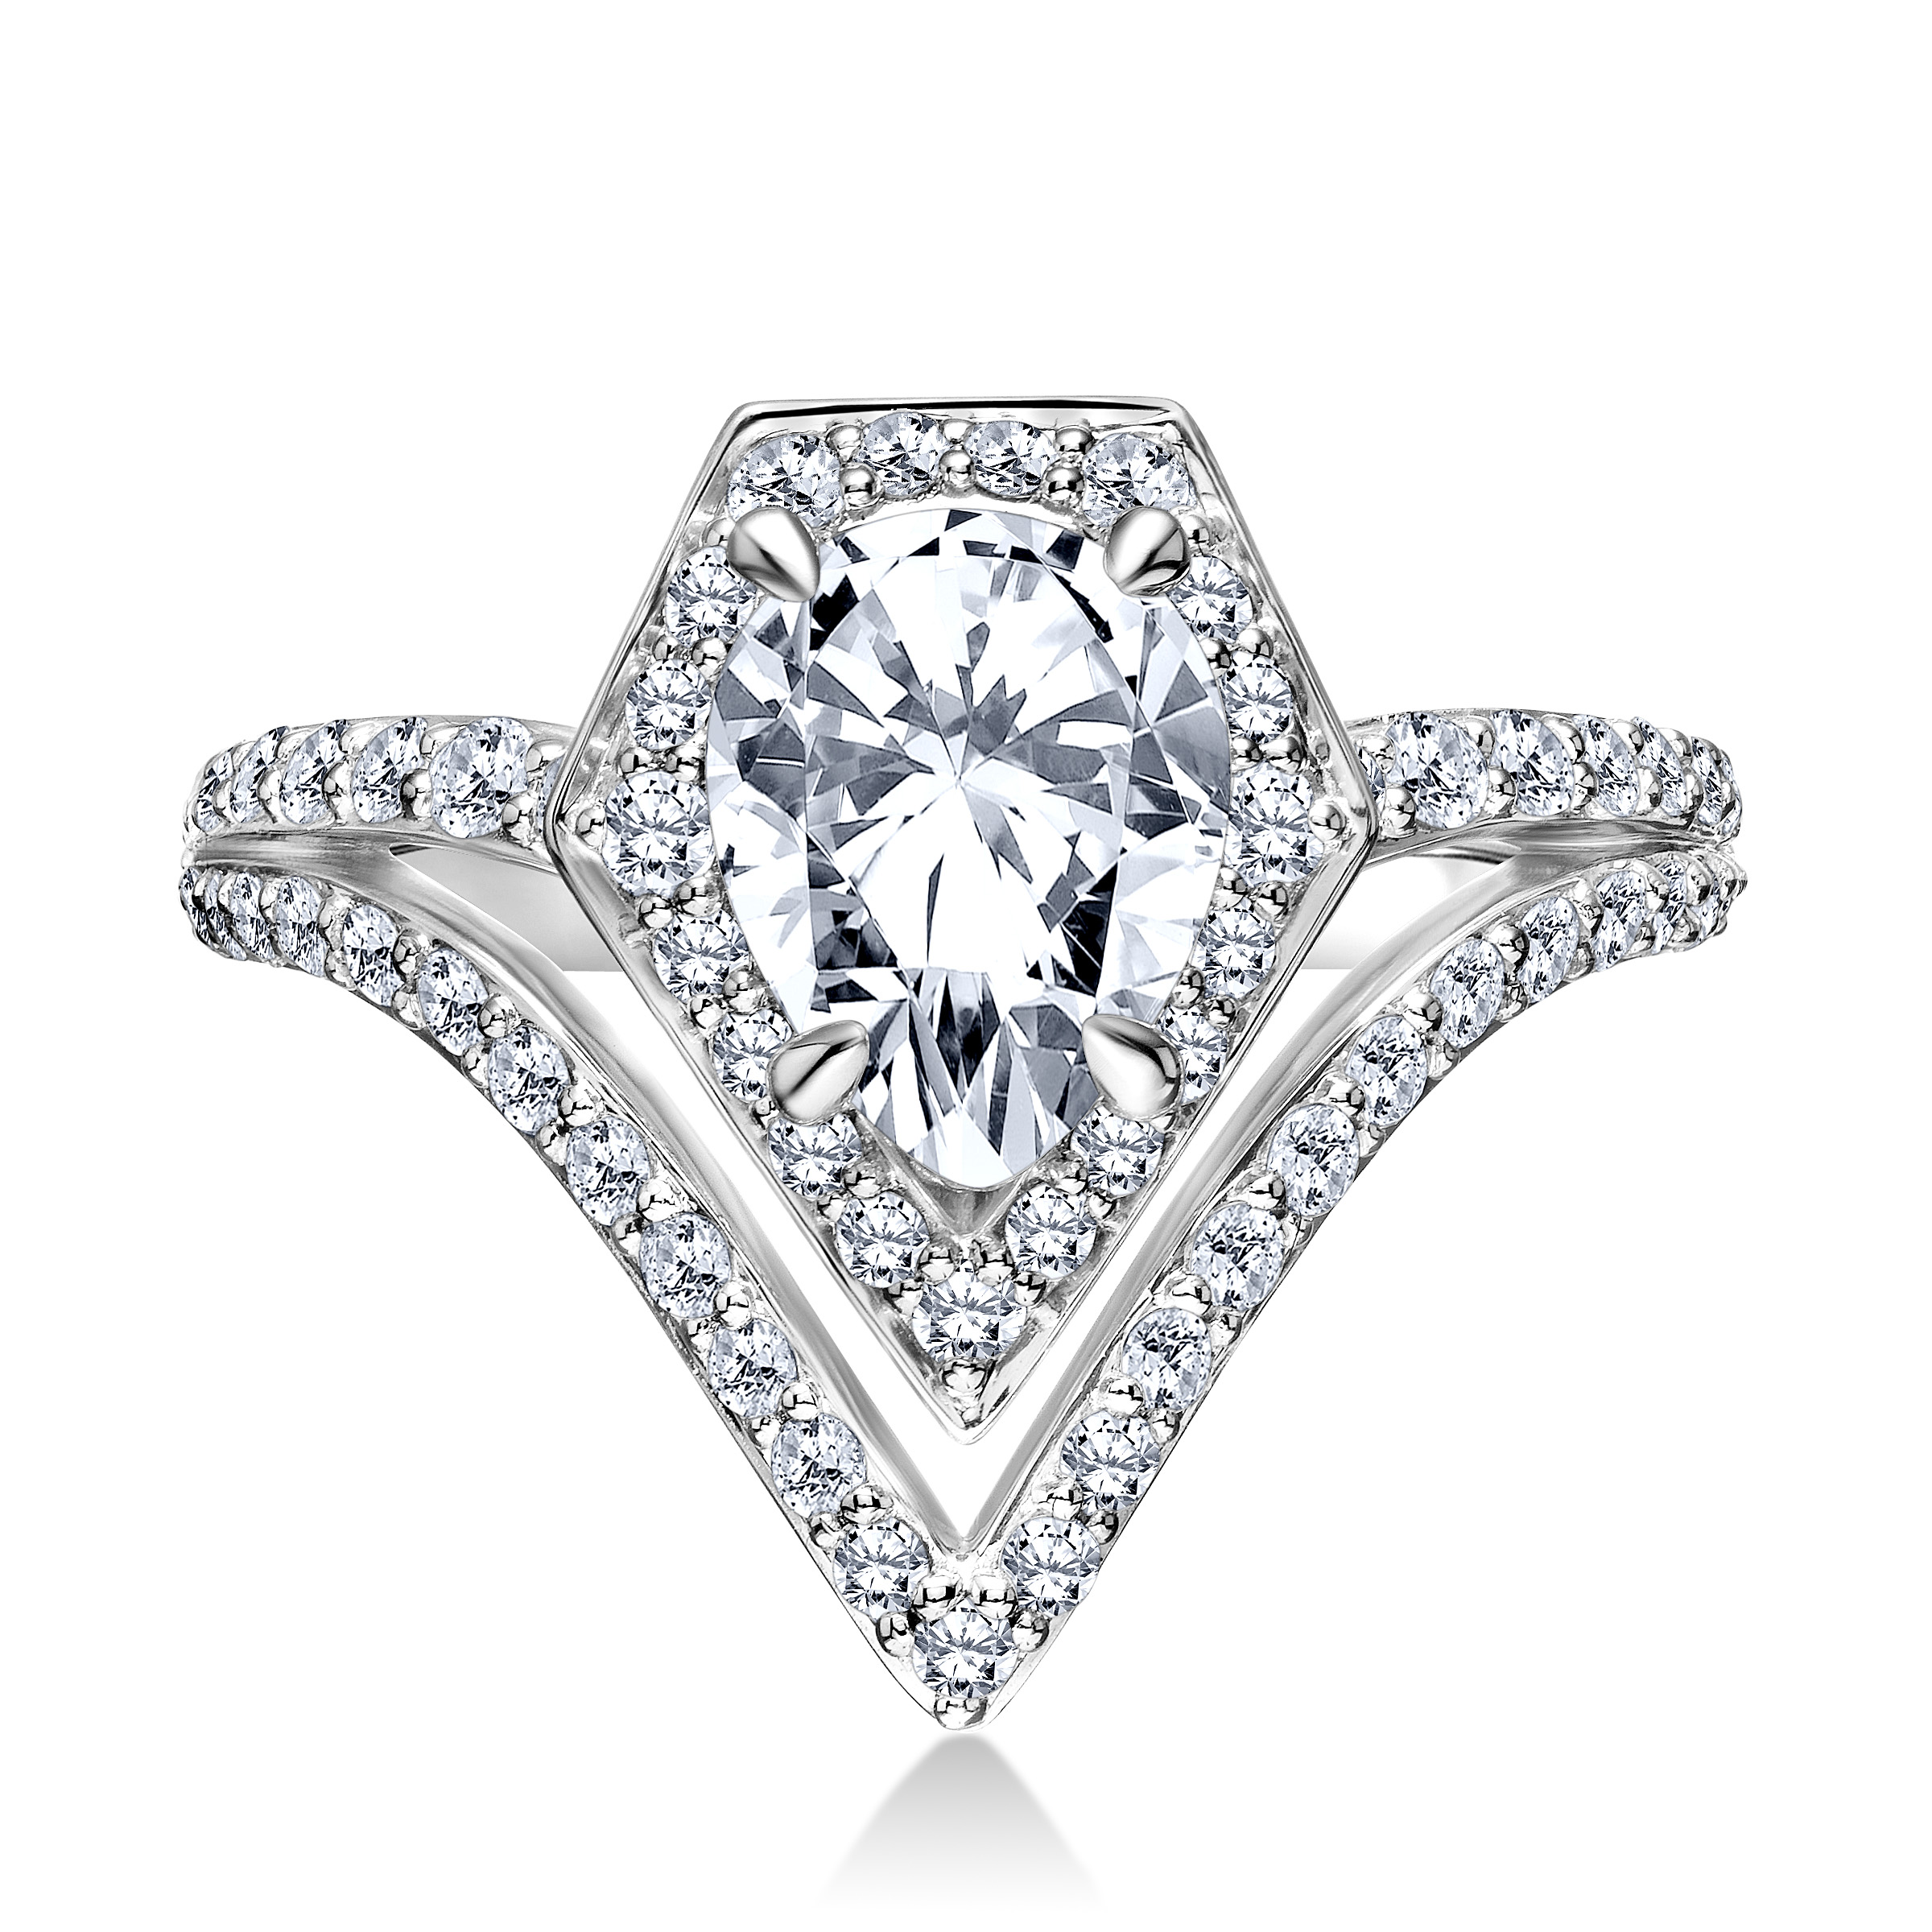 KLEngagement ring